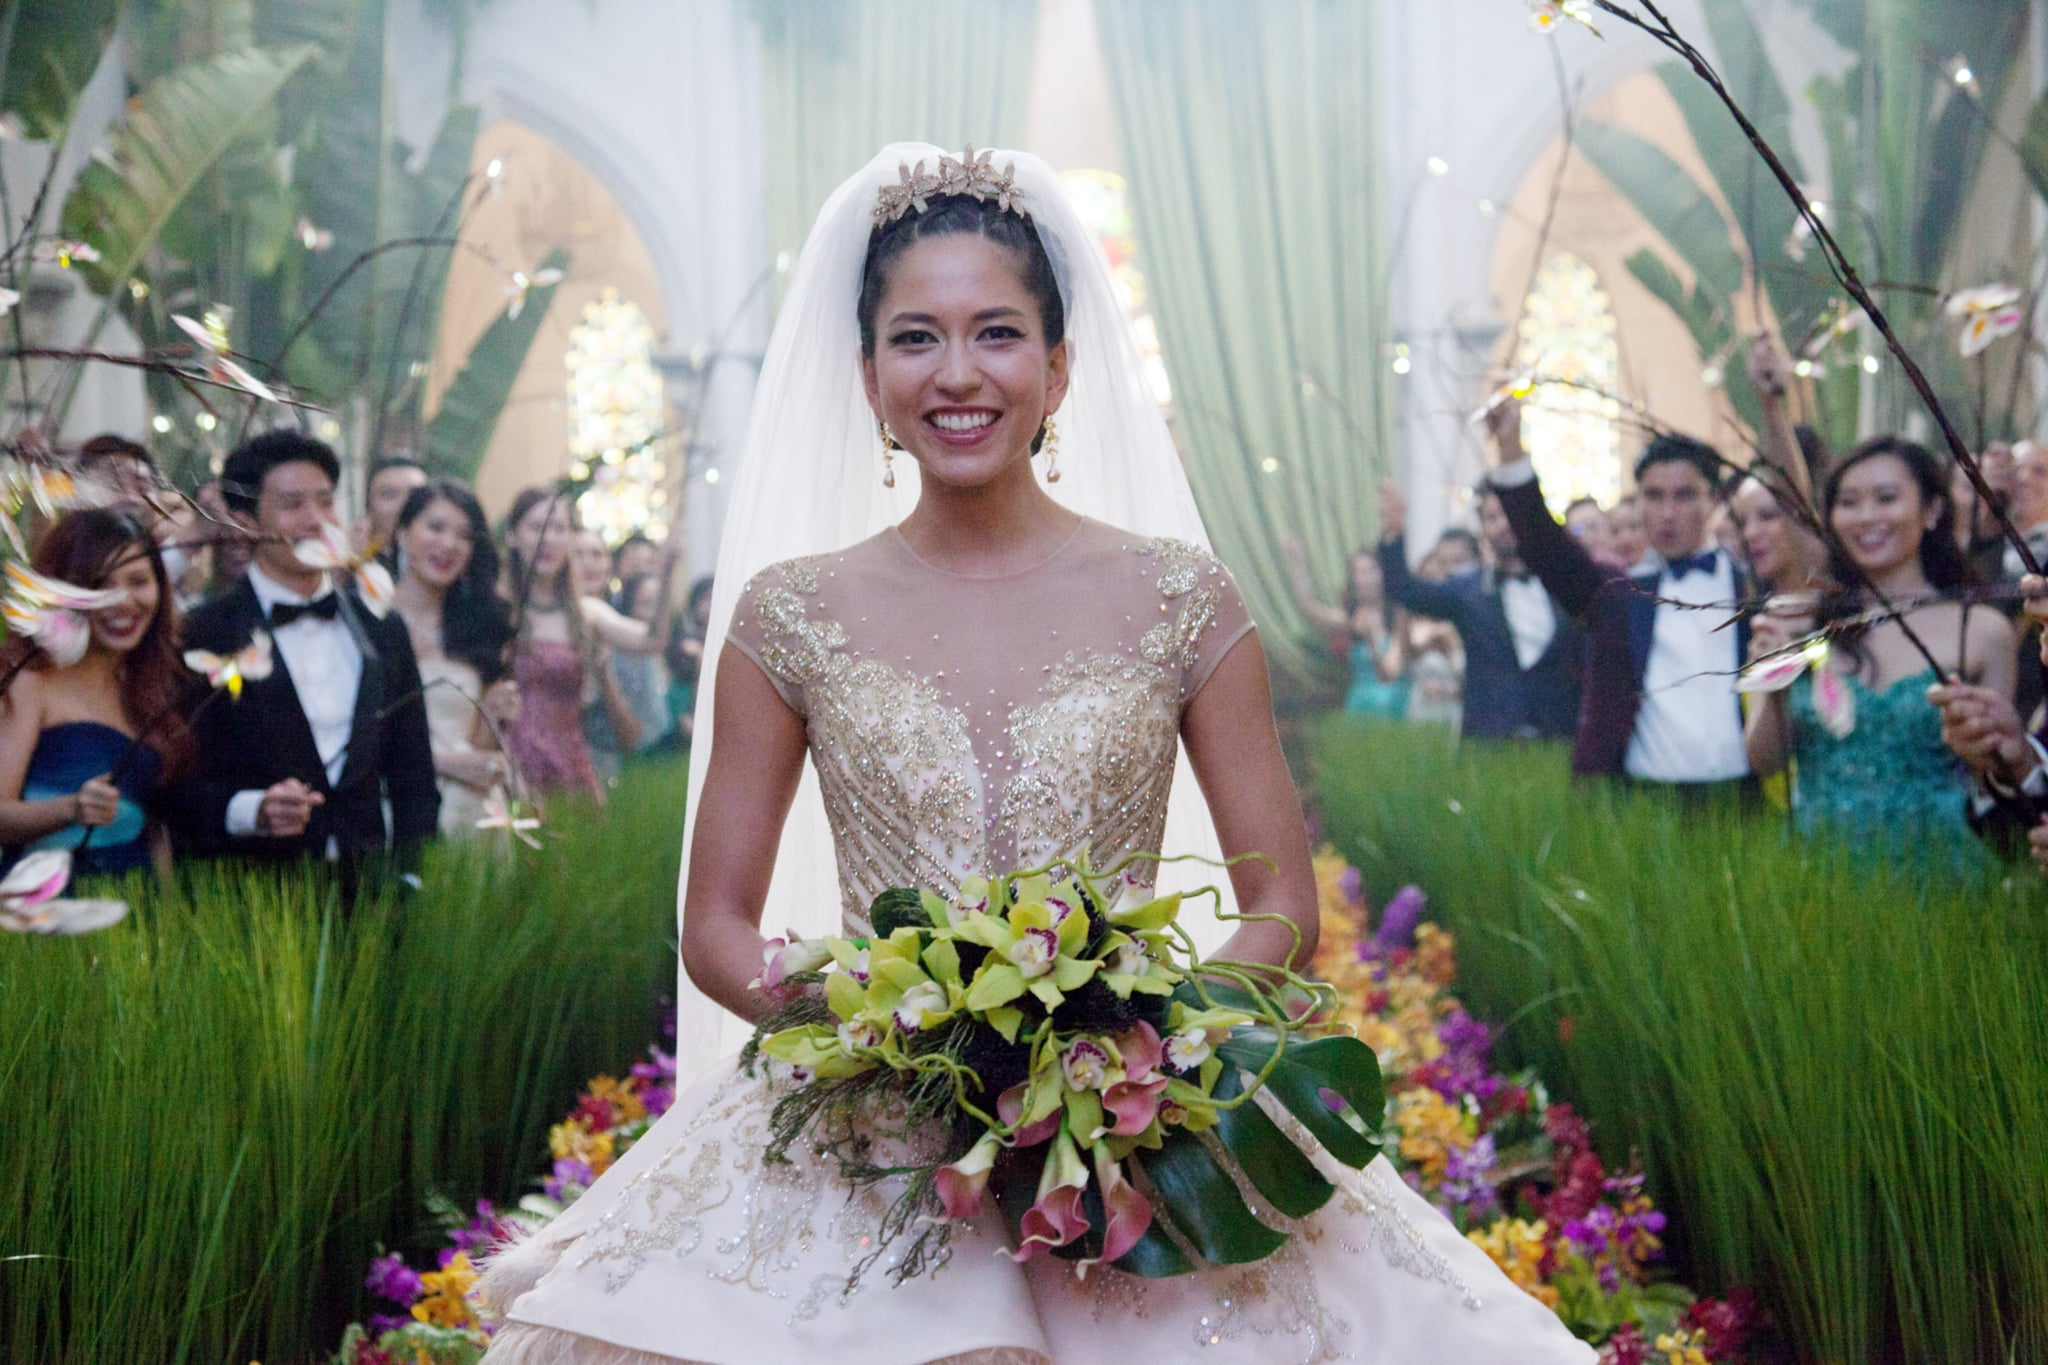 Best Costume Design Crazy Rich Asians Definitely Has Oscar Potential 5 Categories It Could Win Popsugar Entertainment Photo 5